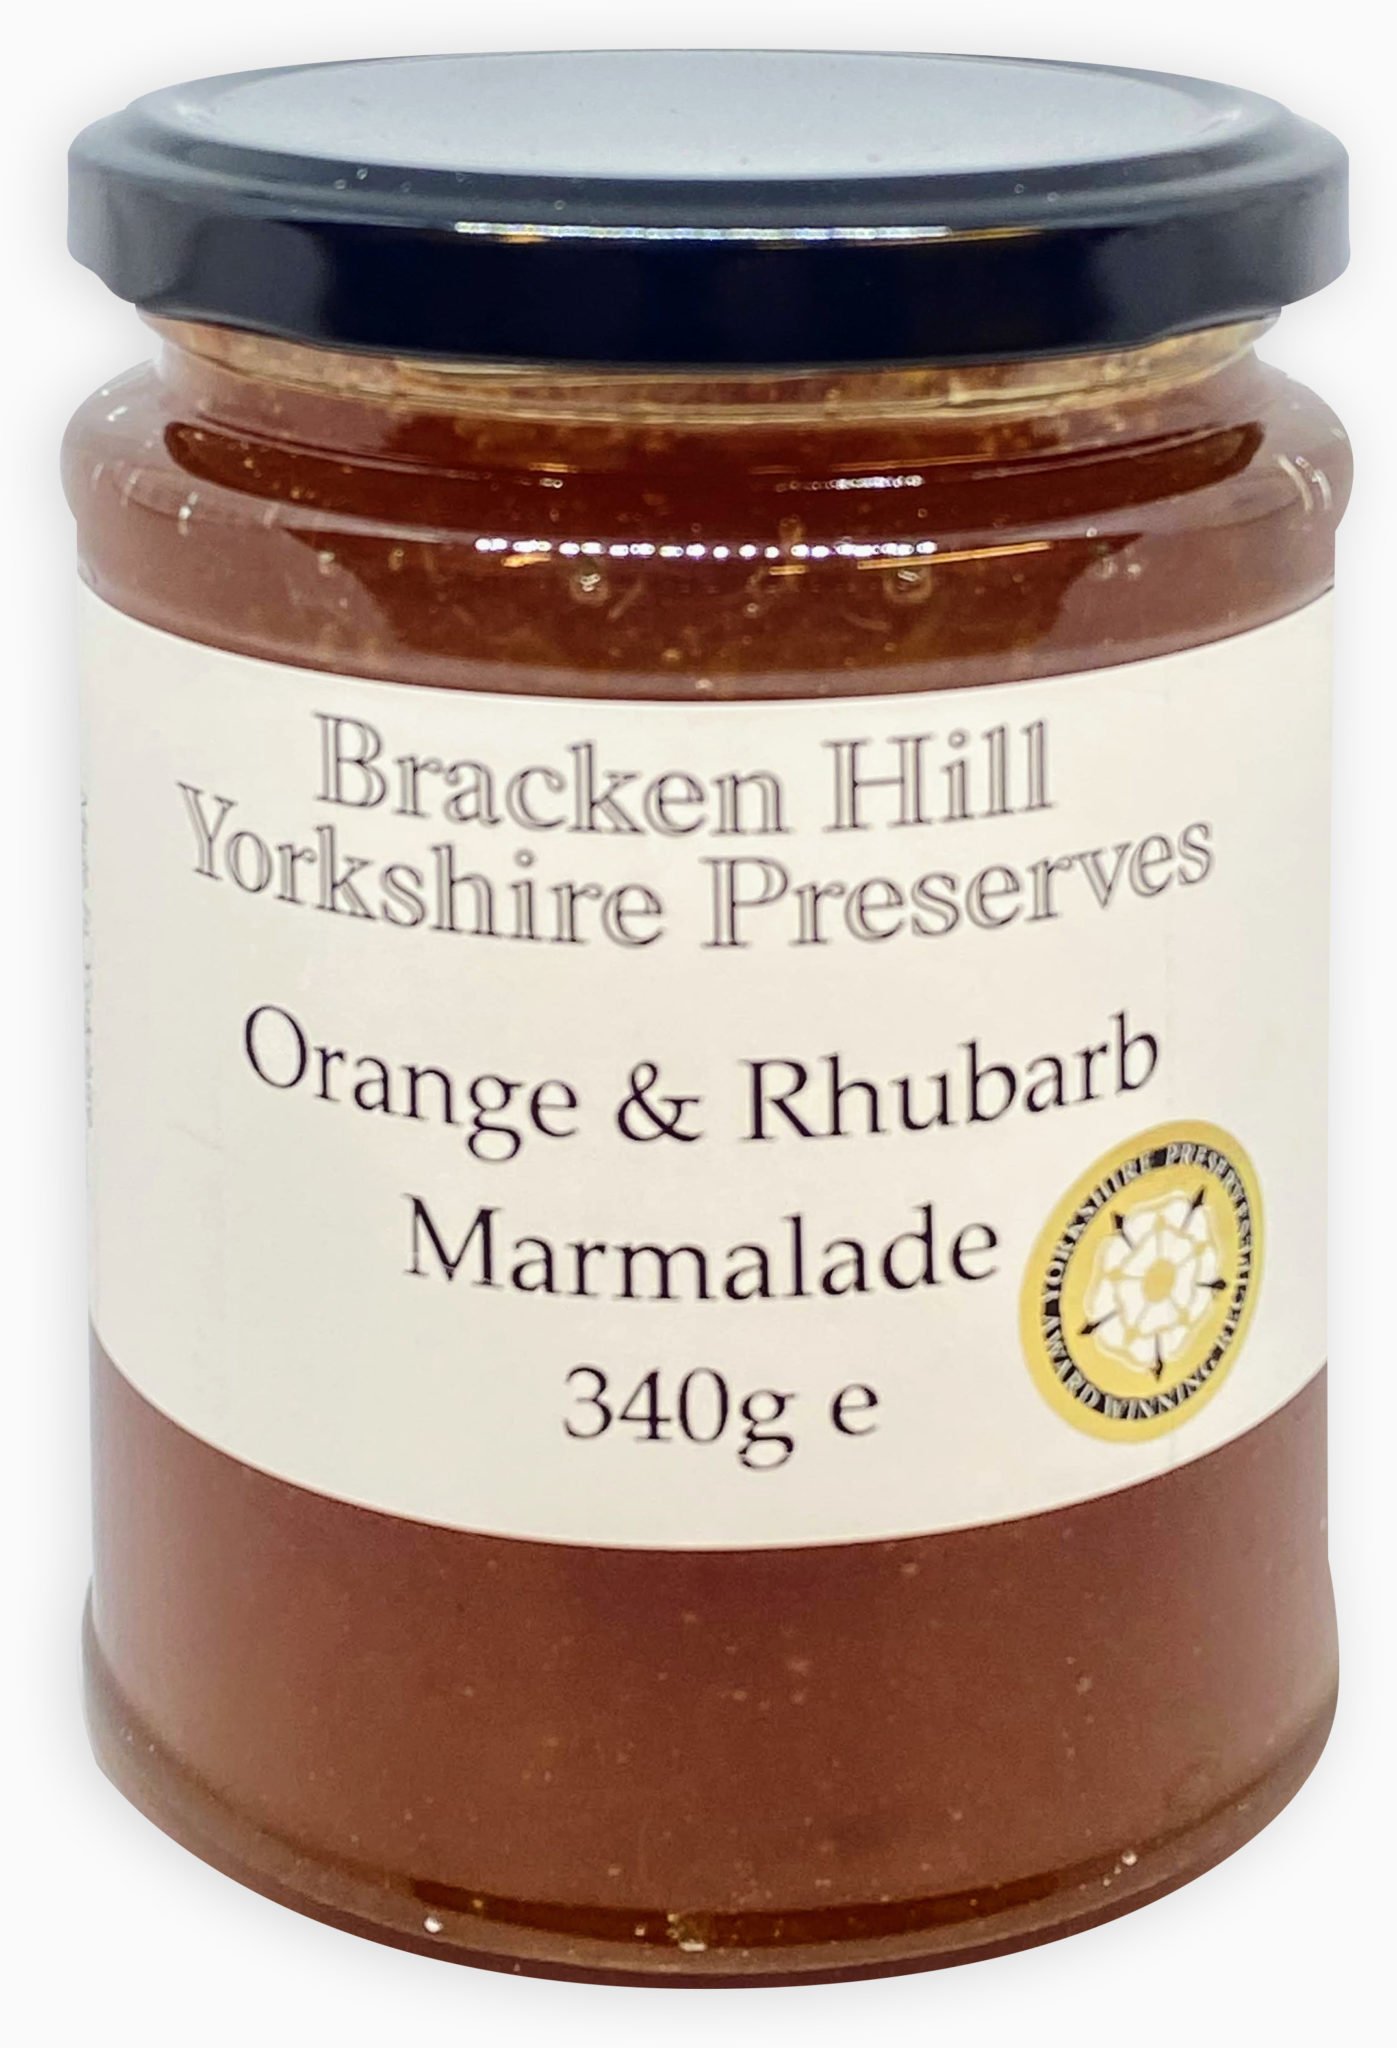 Orange and Rhubarb Marmalade